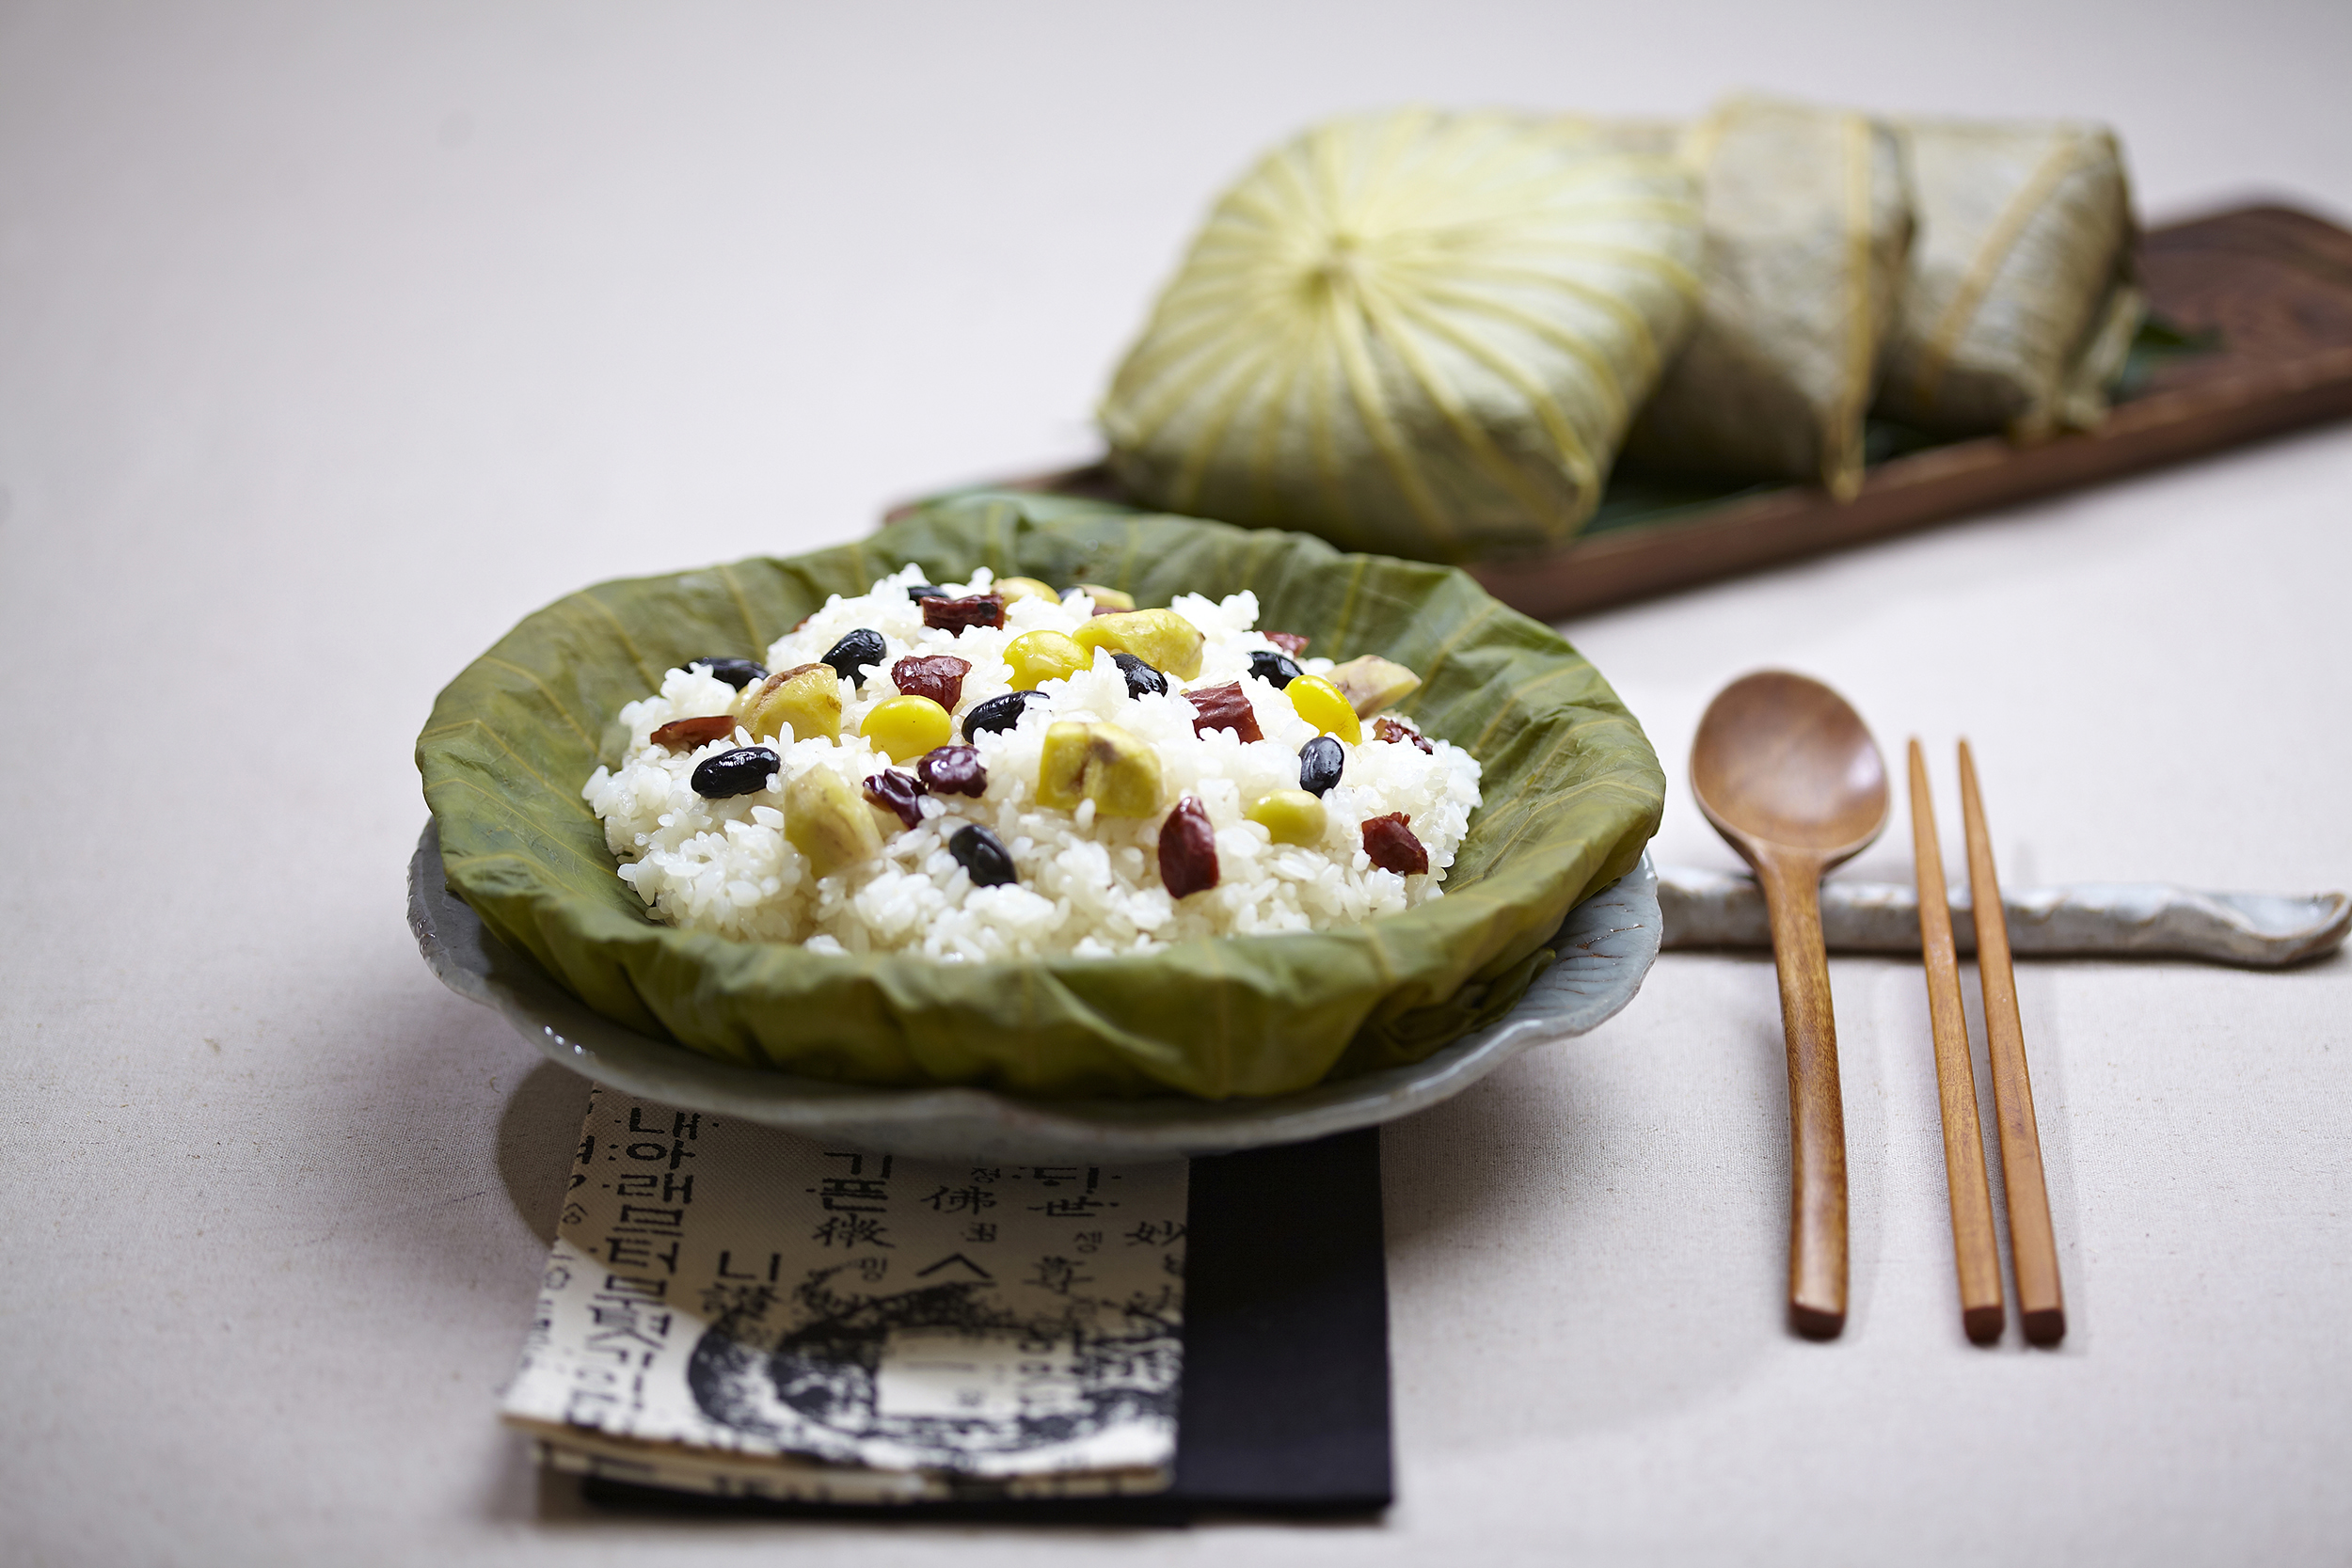 Yeonnipbap (Steamed Rice Wrapped in a Lotus Leaf)